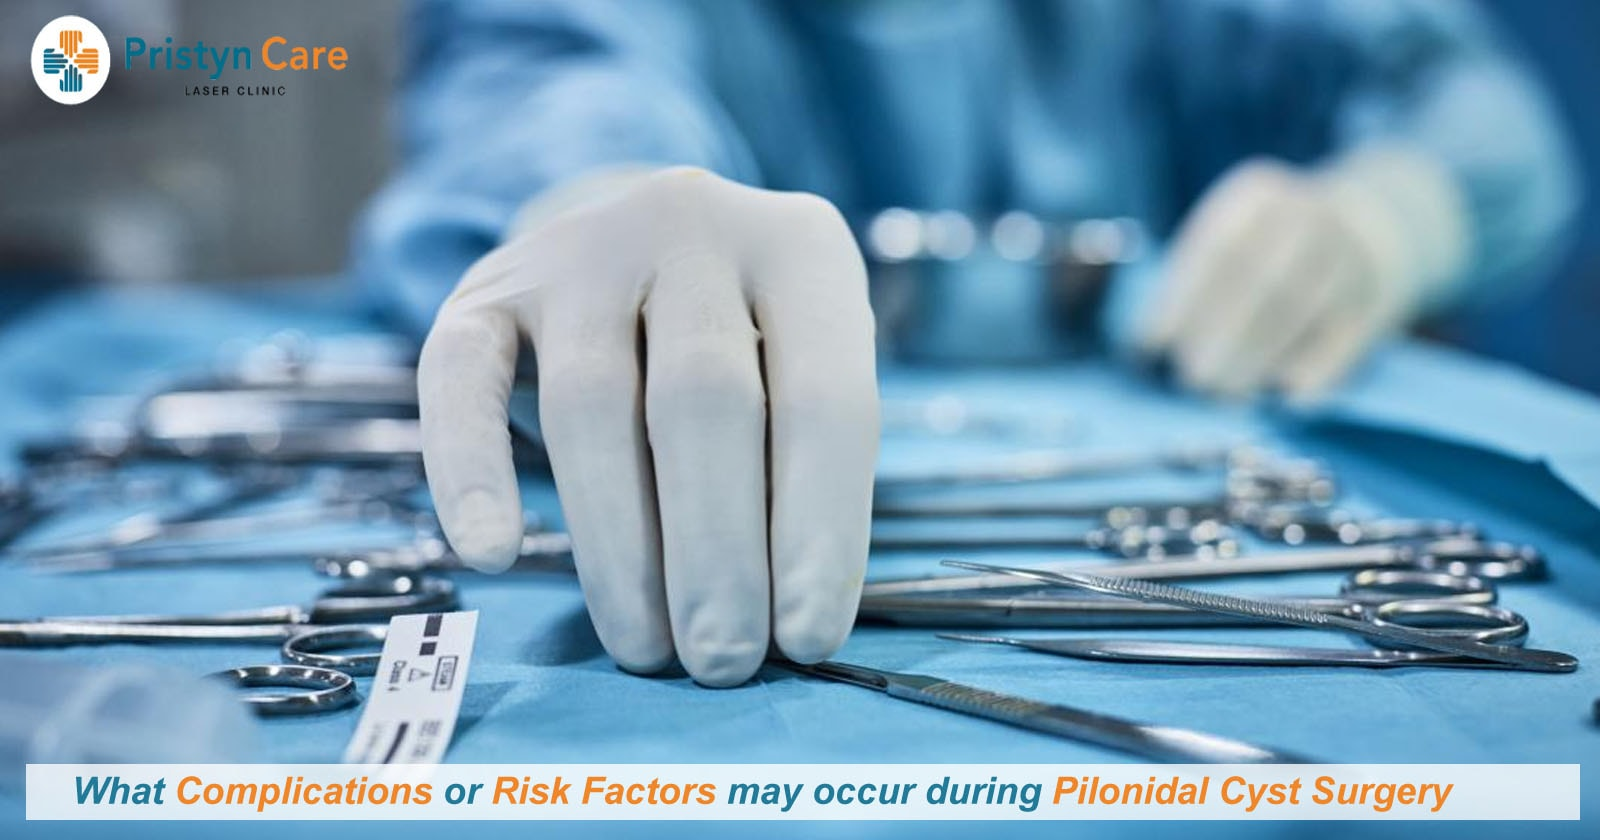 What Complications or Risk Factors may occur during Pilonidal Cyst Surgery